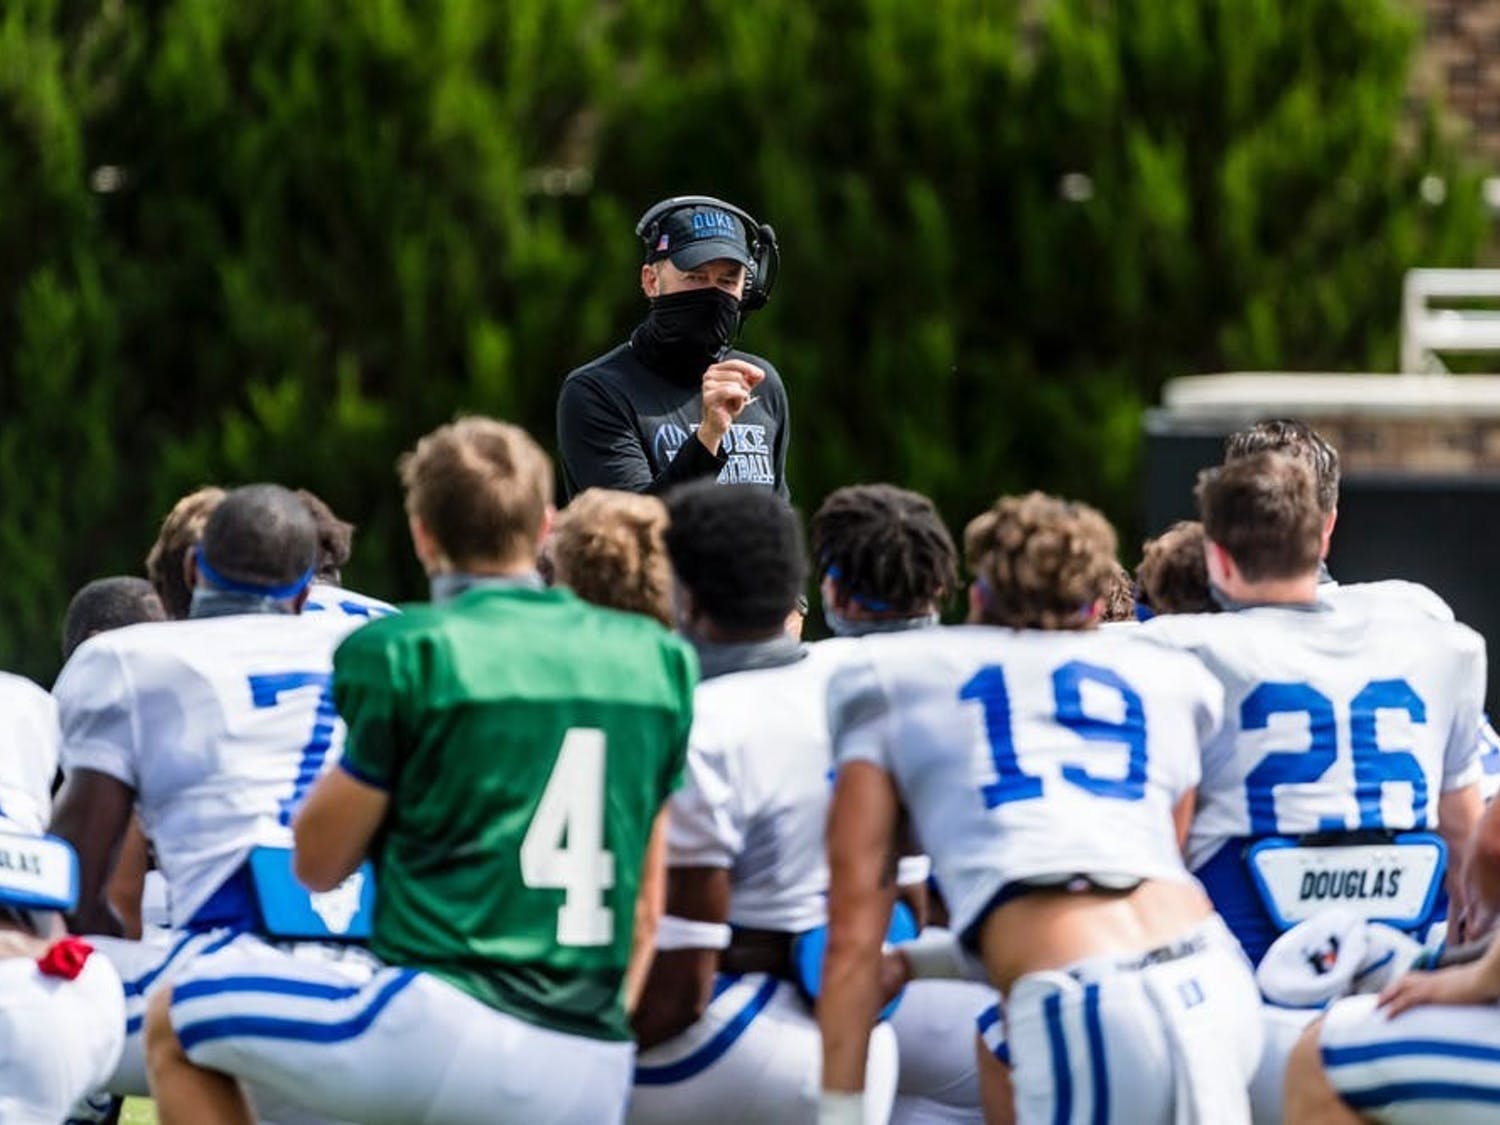 Duke, as well as the rest of the college football world, underwent a series of twists and turns throughout a tumultuous 2020 offseason.